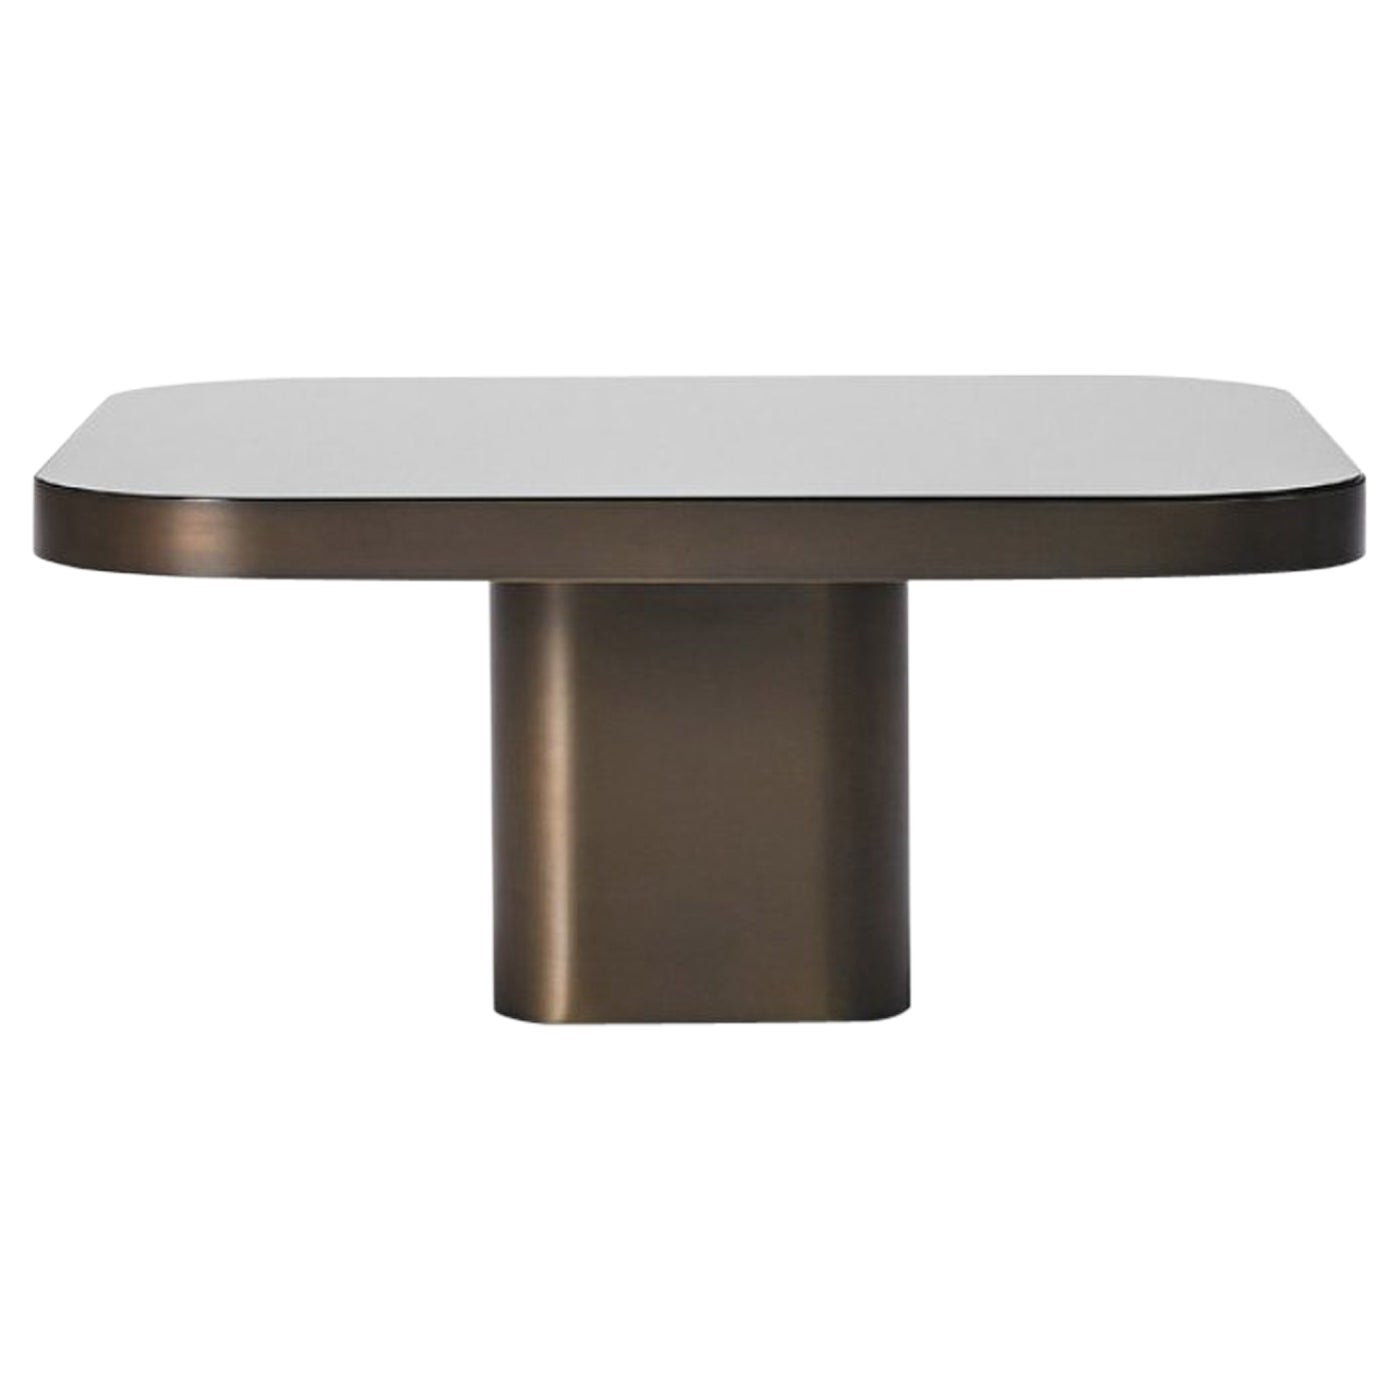 ClassiCon Bow Coffee Table No. 3 by Guilherme Torres